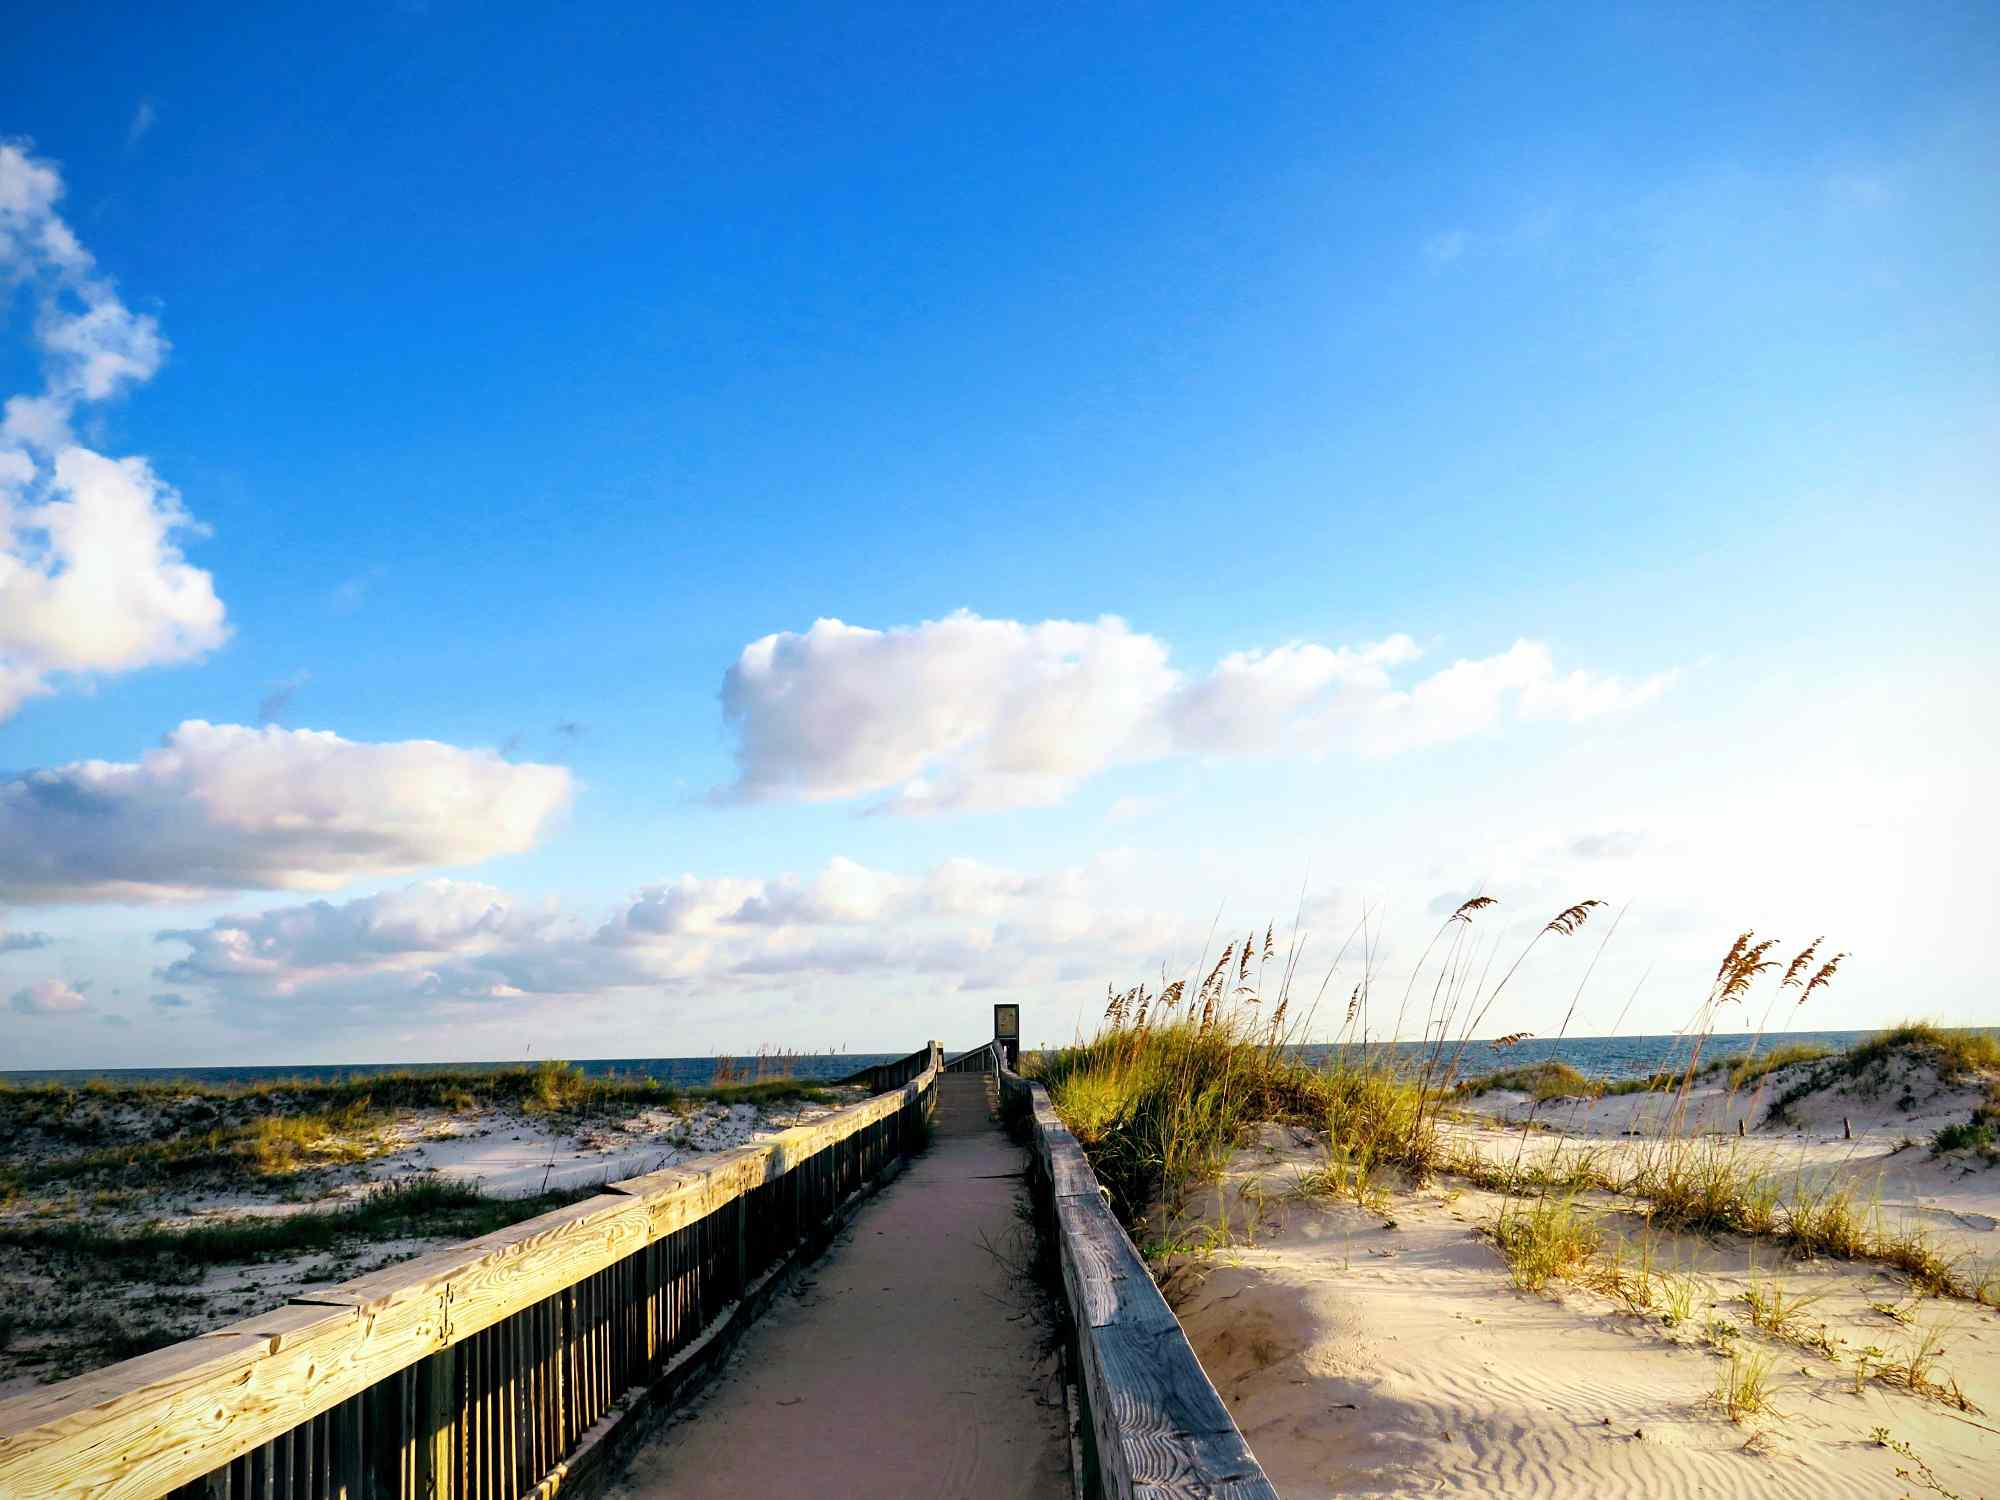 pathway leading to beach in Gulf Shores, Alabama